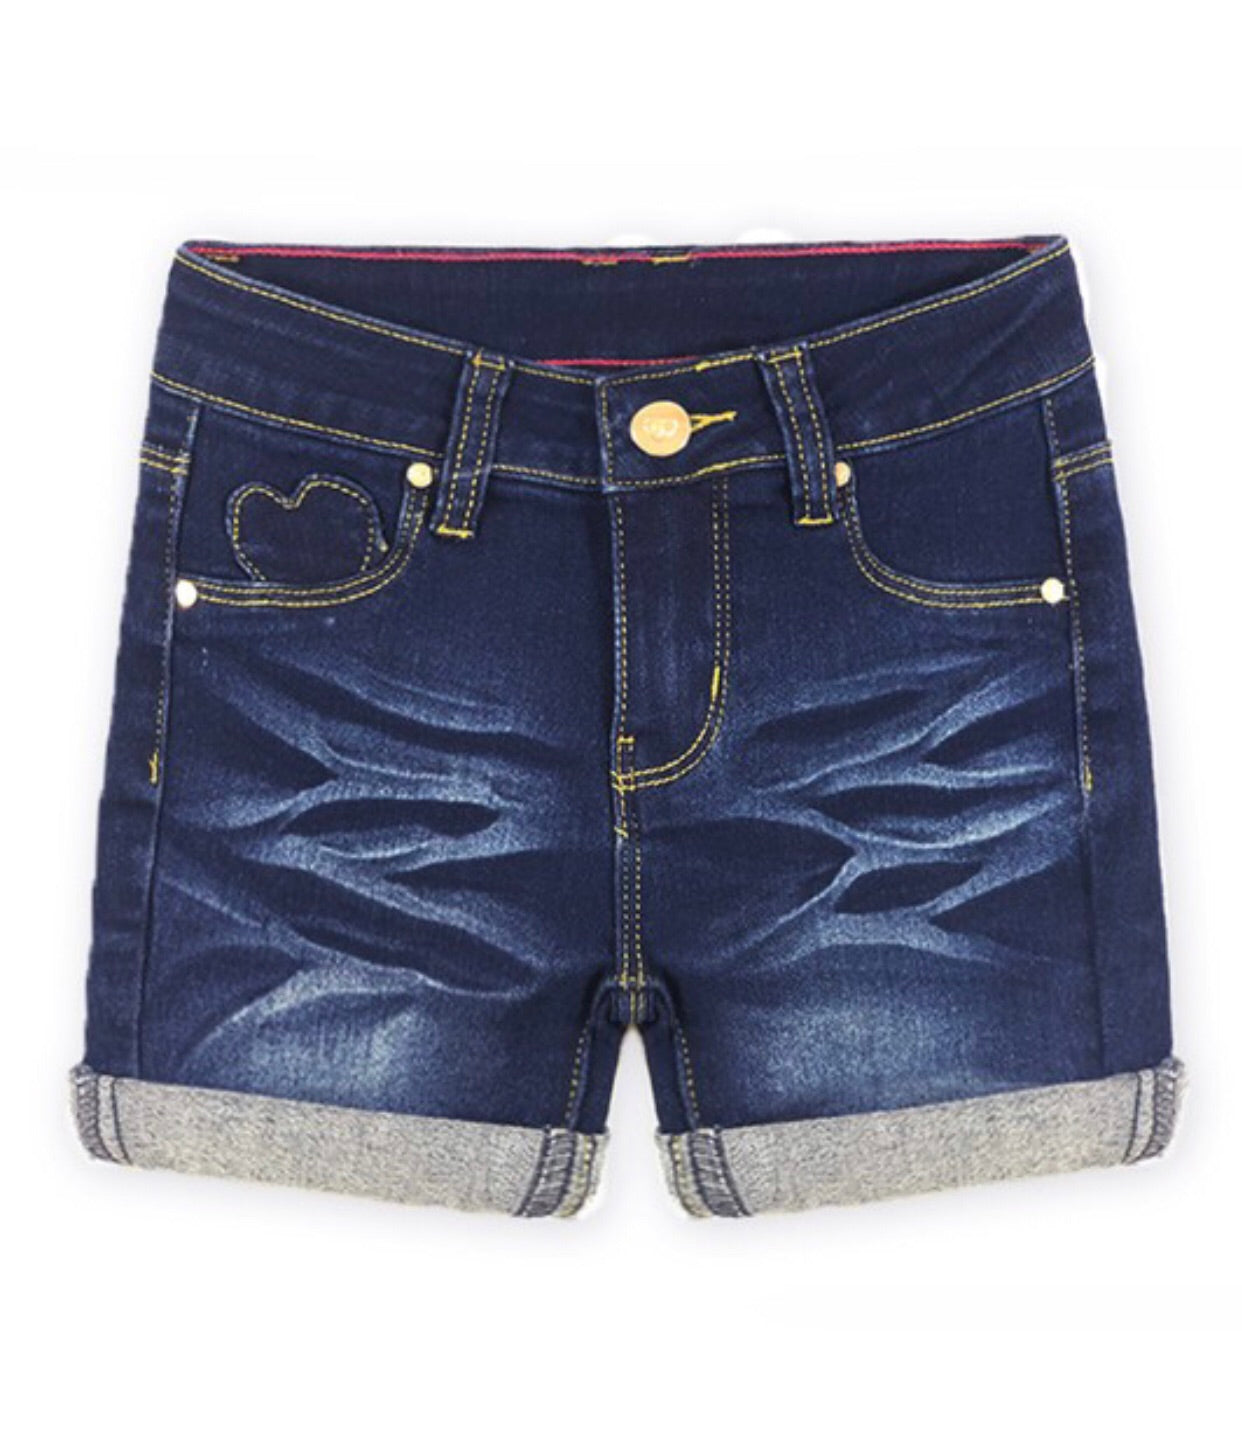 Zuri Denim Shorts